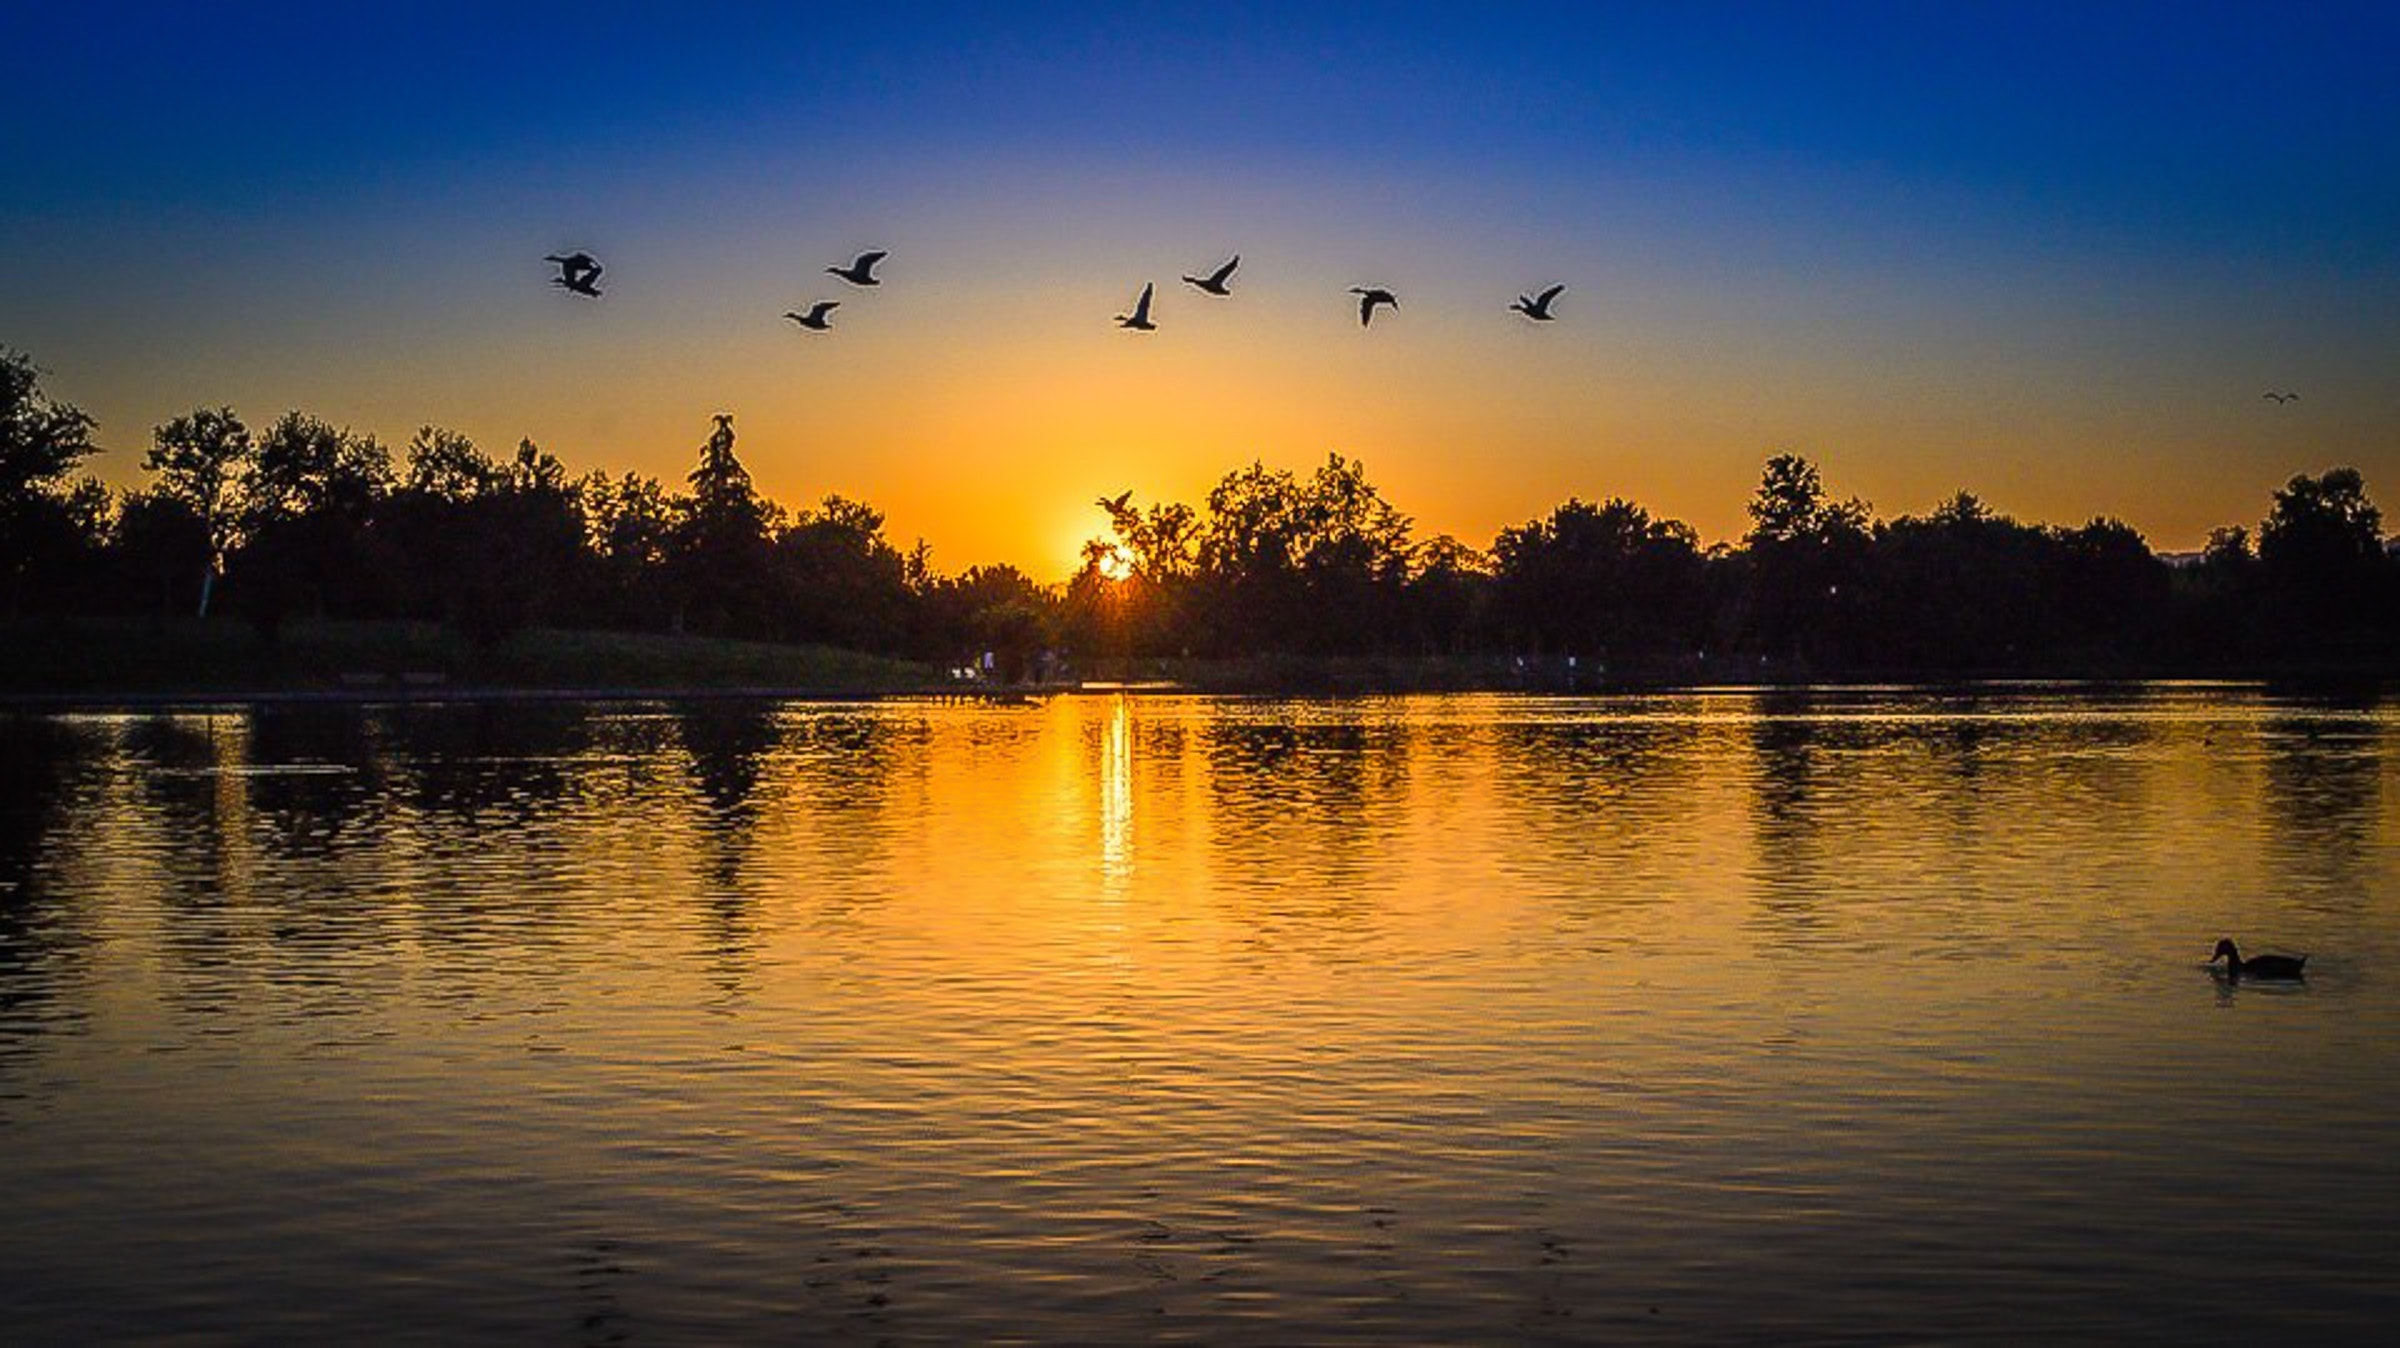 Silhouette of Forest With Birds Flying Above Body of Water during Sunset, Dawn, Dusk, Lake, Landscape, HQ Photo